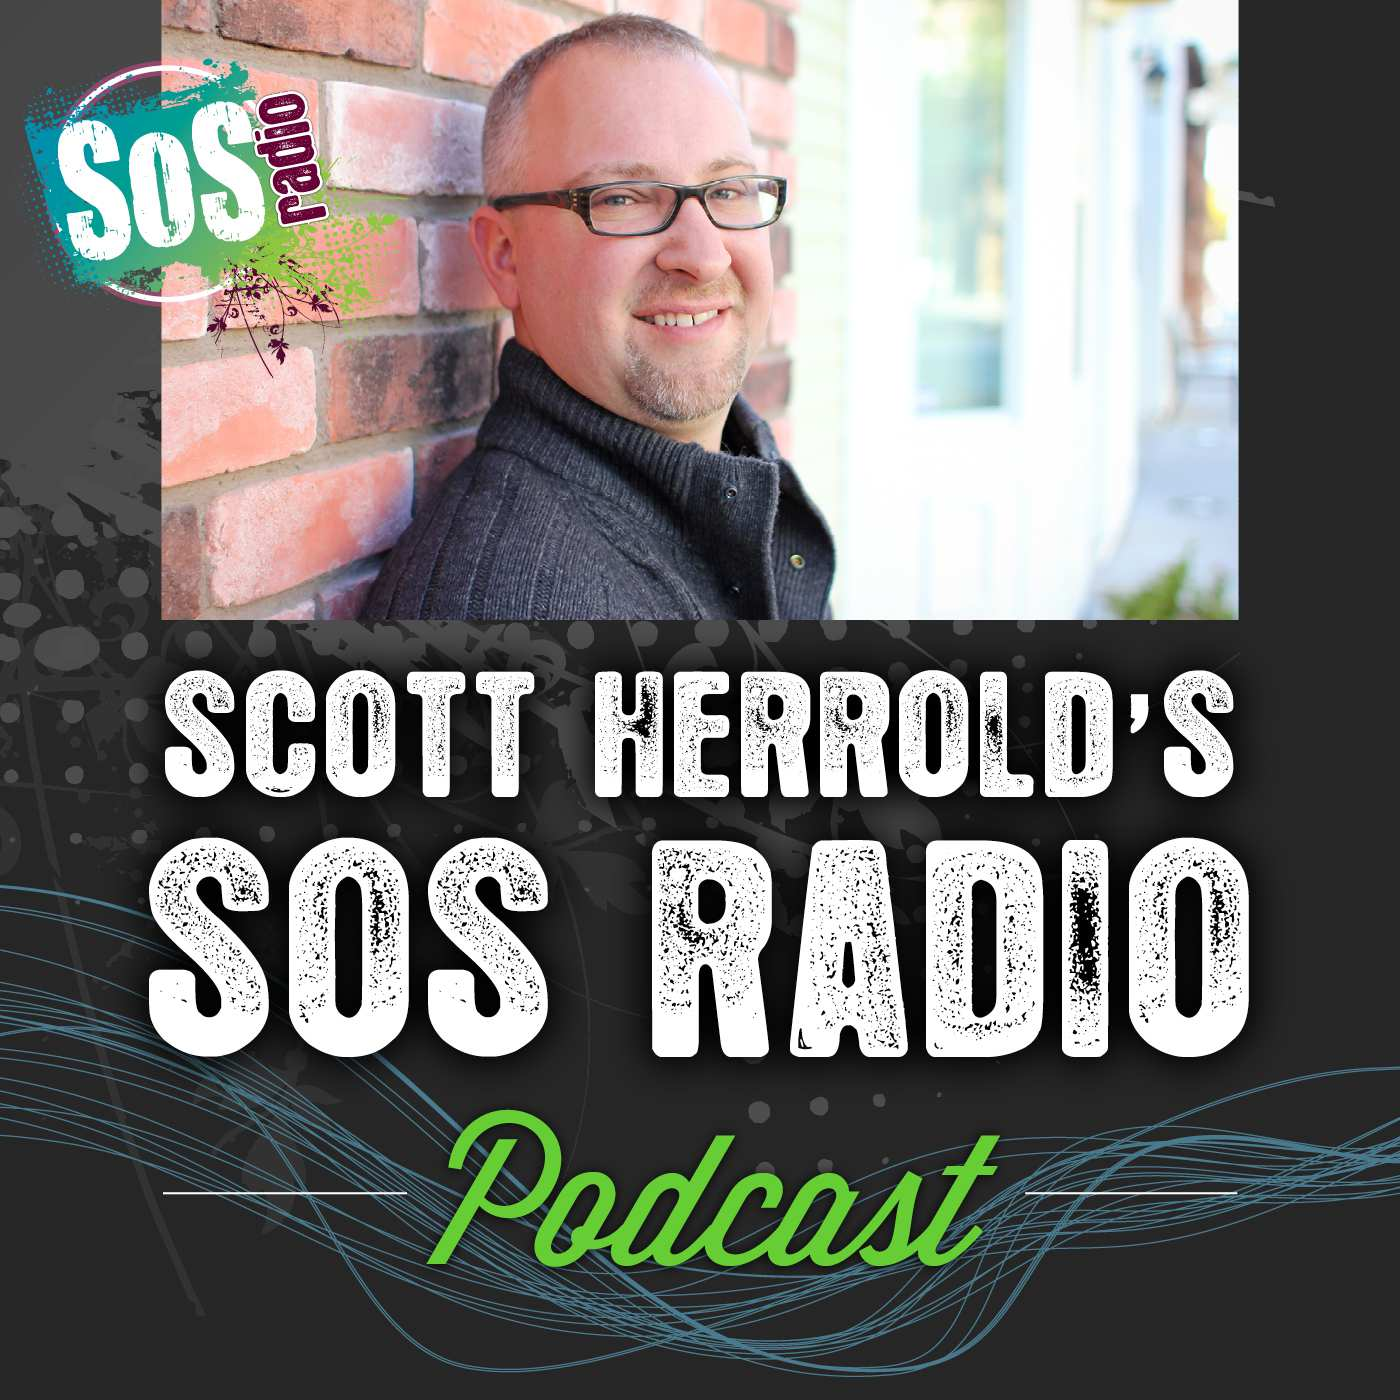 Scott Herrold's Podcast